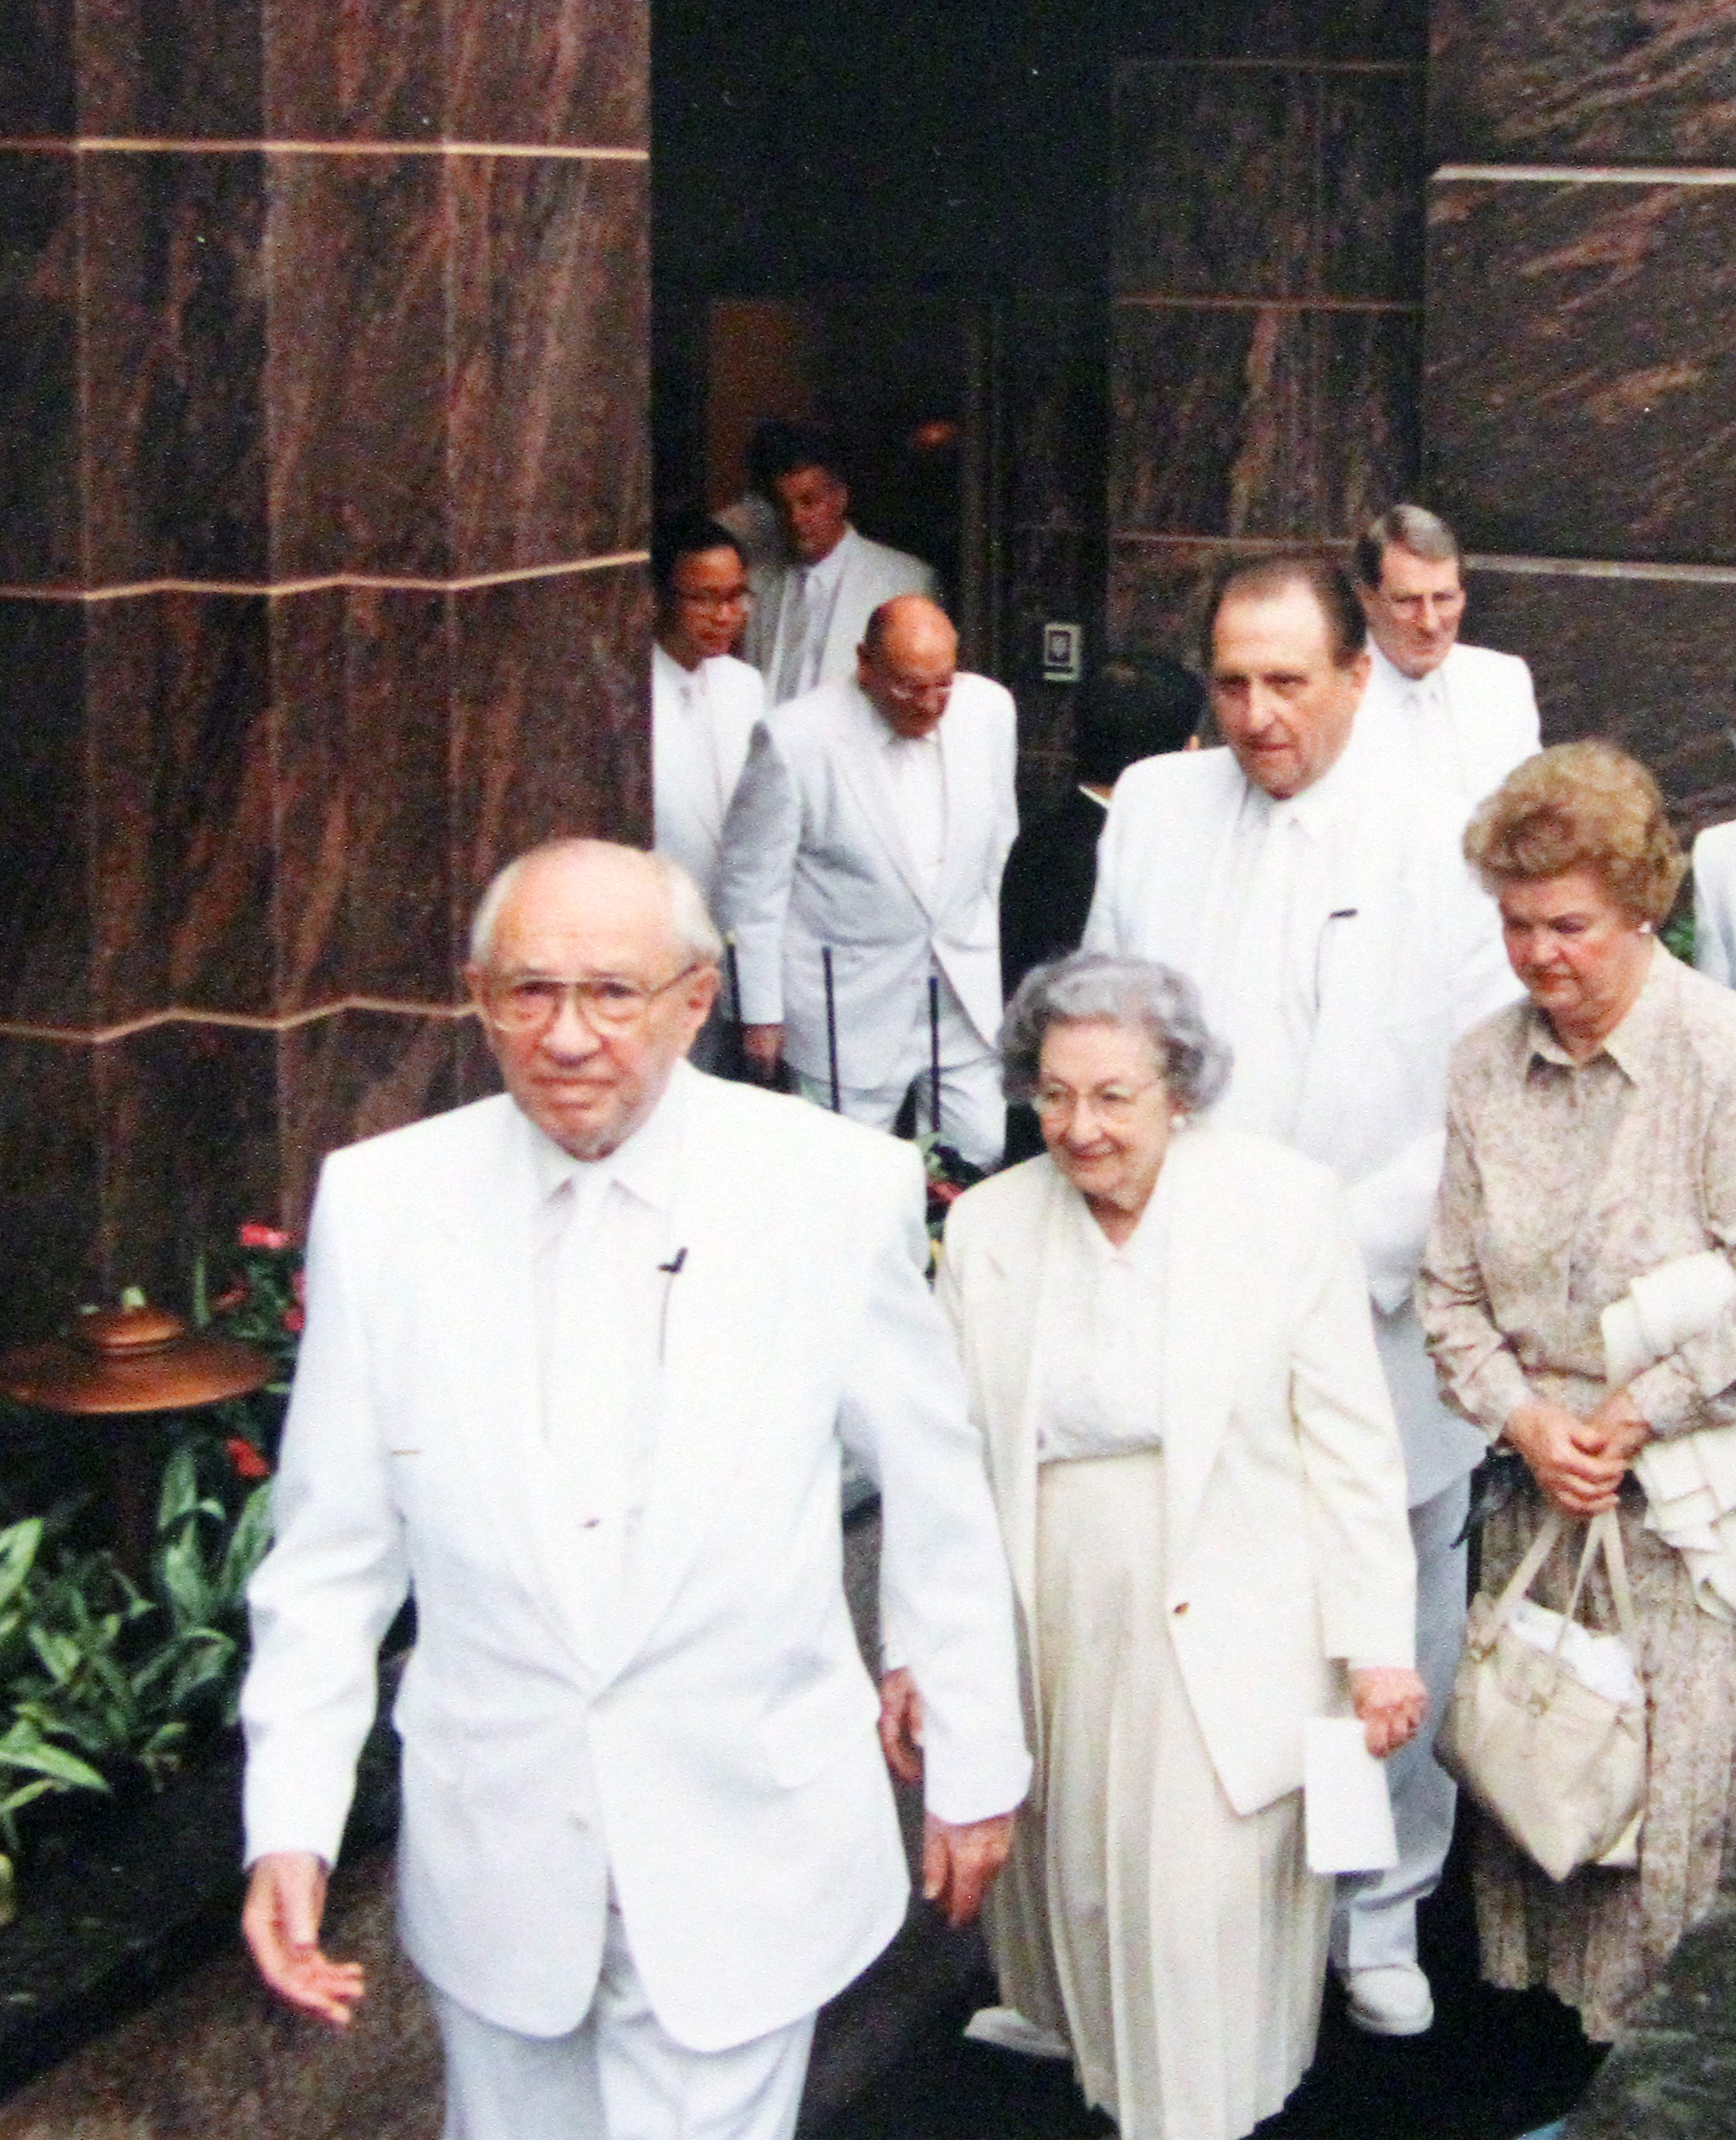 President Gordon B. Hinckley, Sister Marjorie P. Hinckley, President Thomas S. Monson, Sister Frances J. Monson and others walk out of the Hong Kong Temple to participate in its cornerstone ceremony on May 26, 1996.